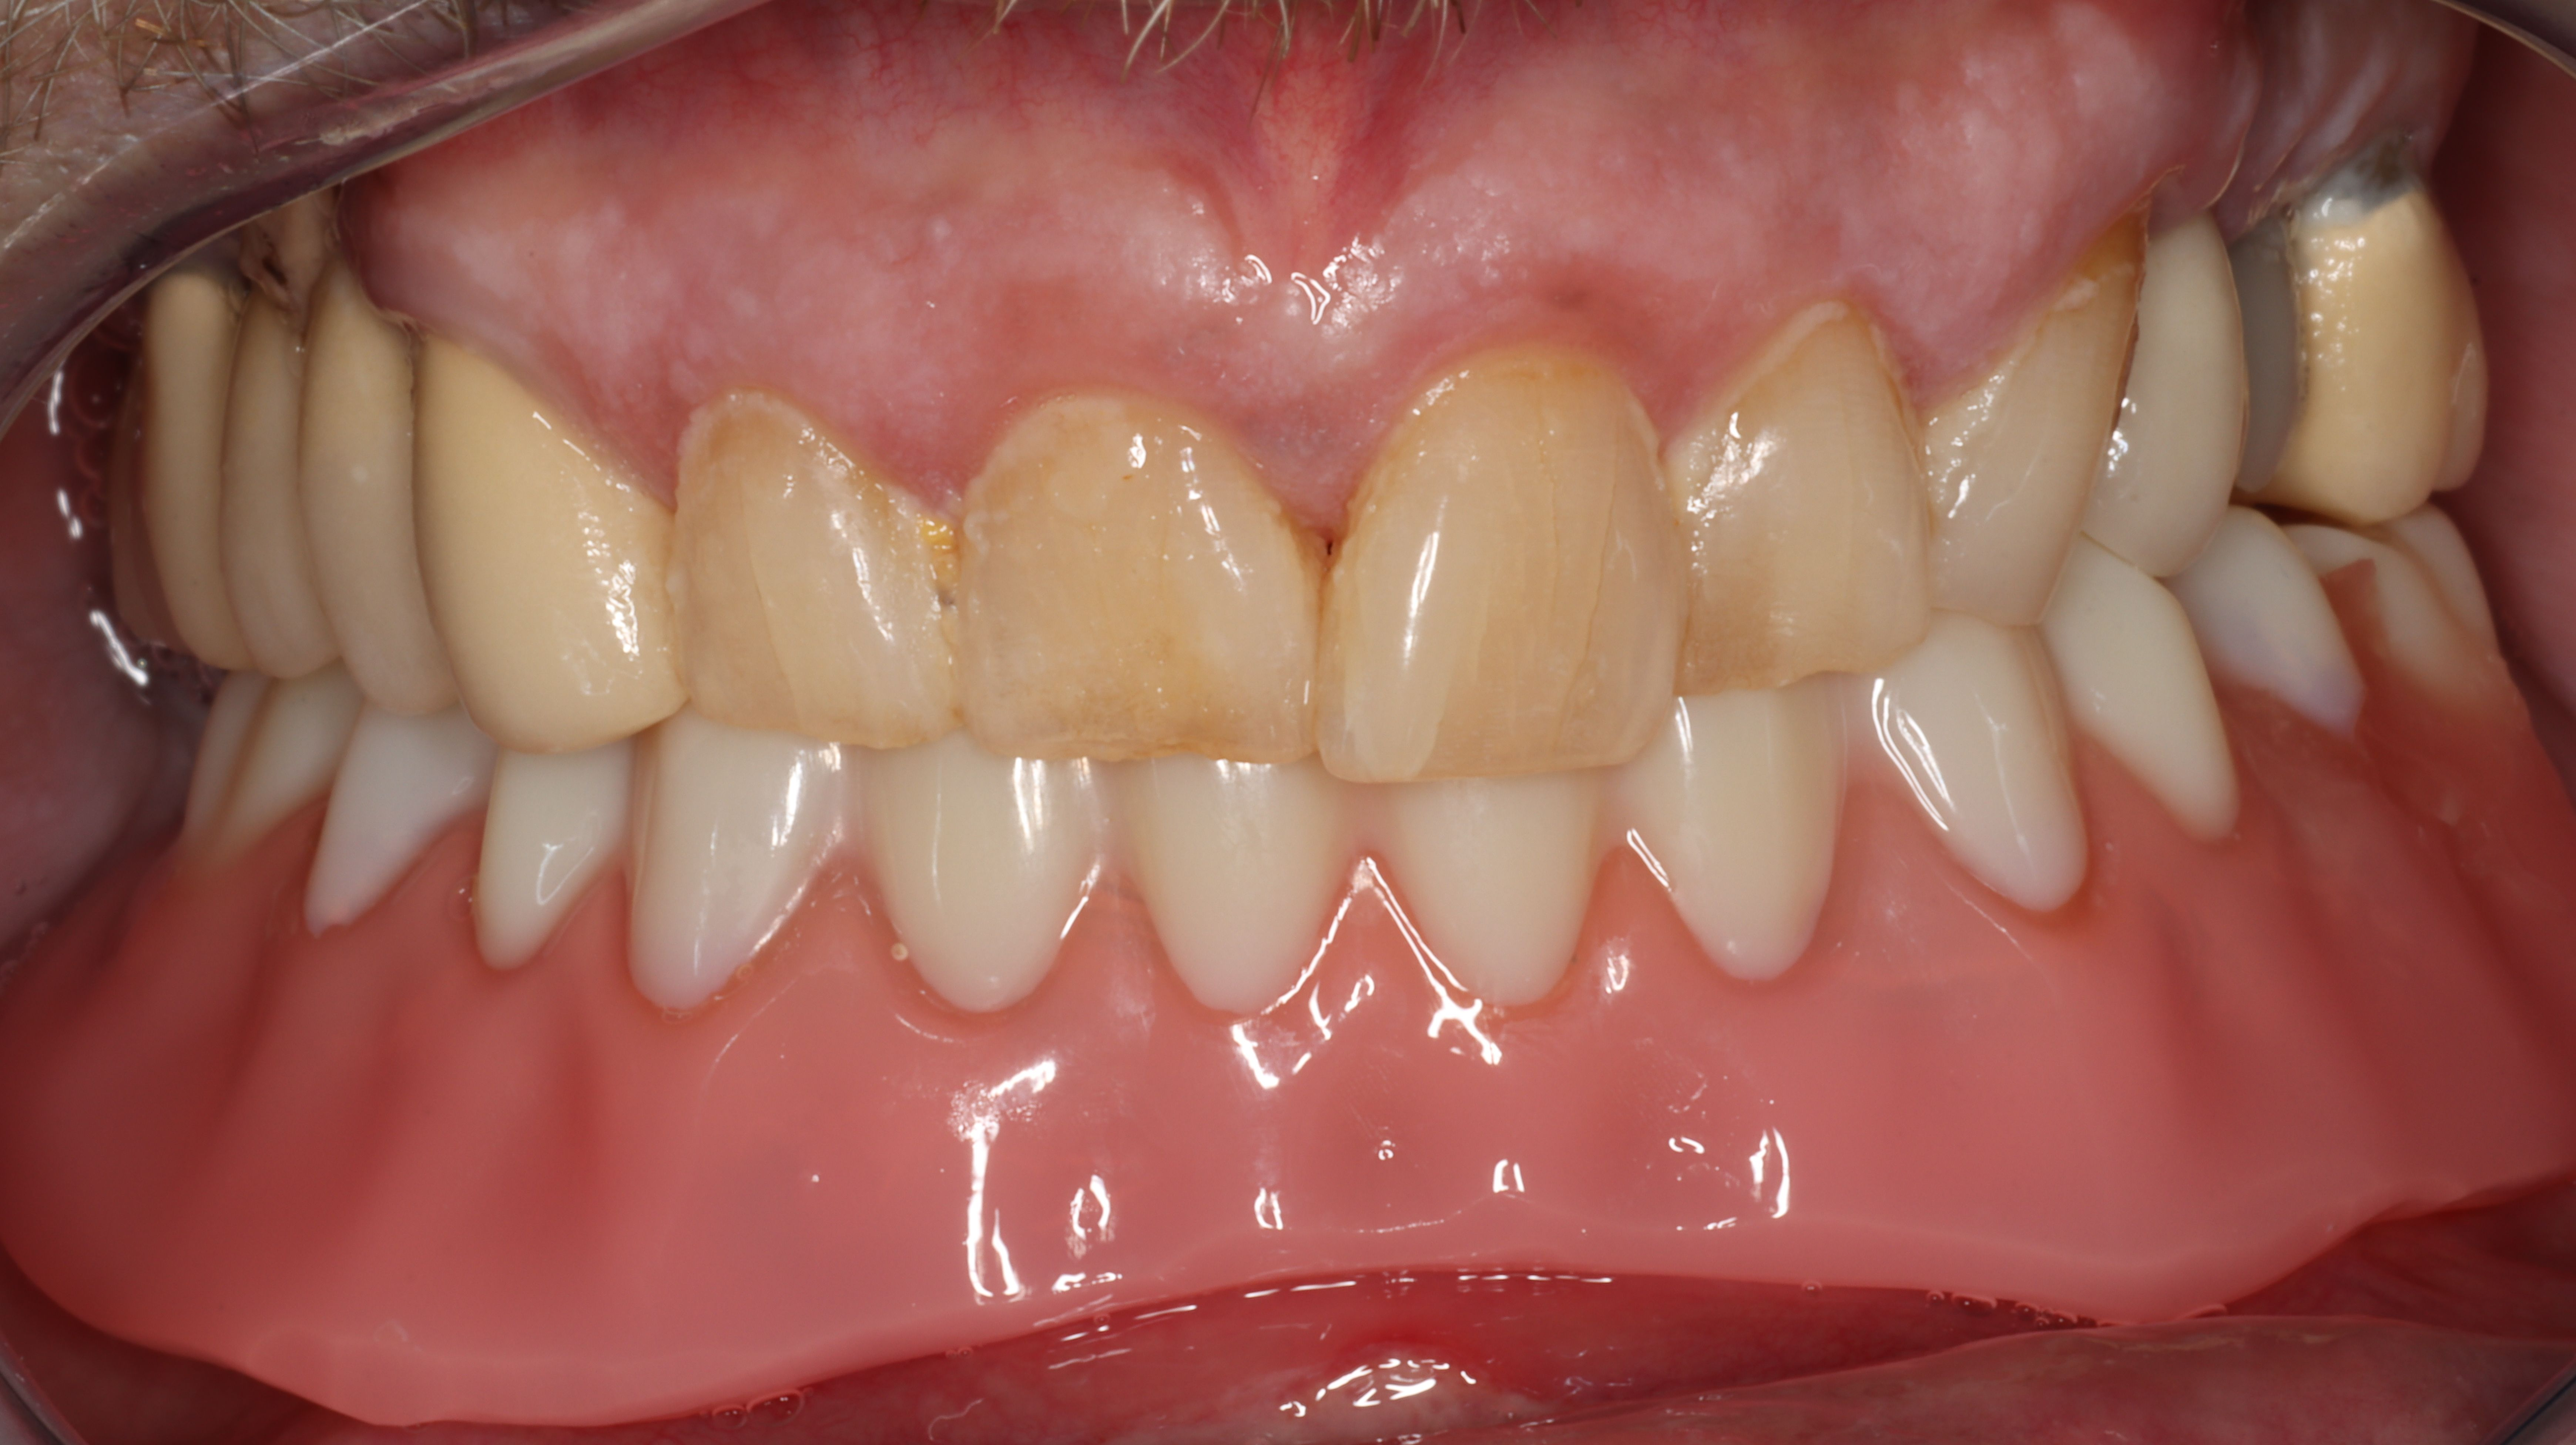 Figure 23. Denture seated, occlusion verified at the completion of surgery and restorative pickup of attachments.